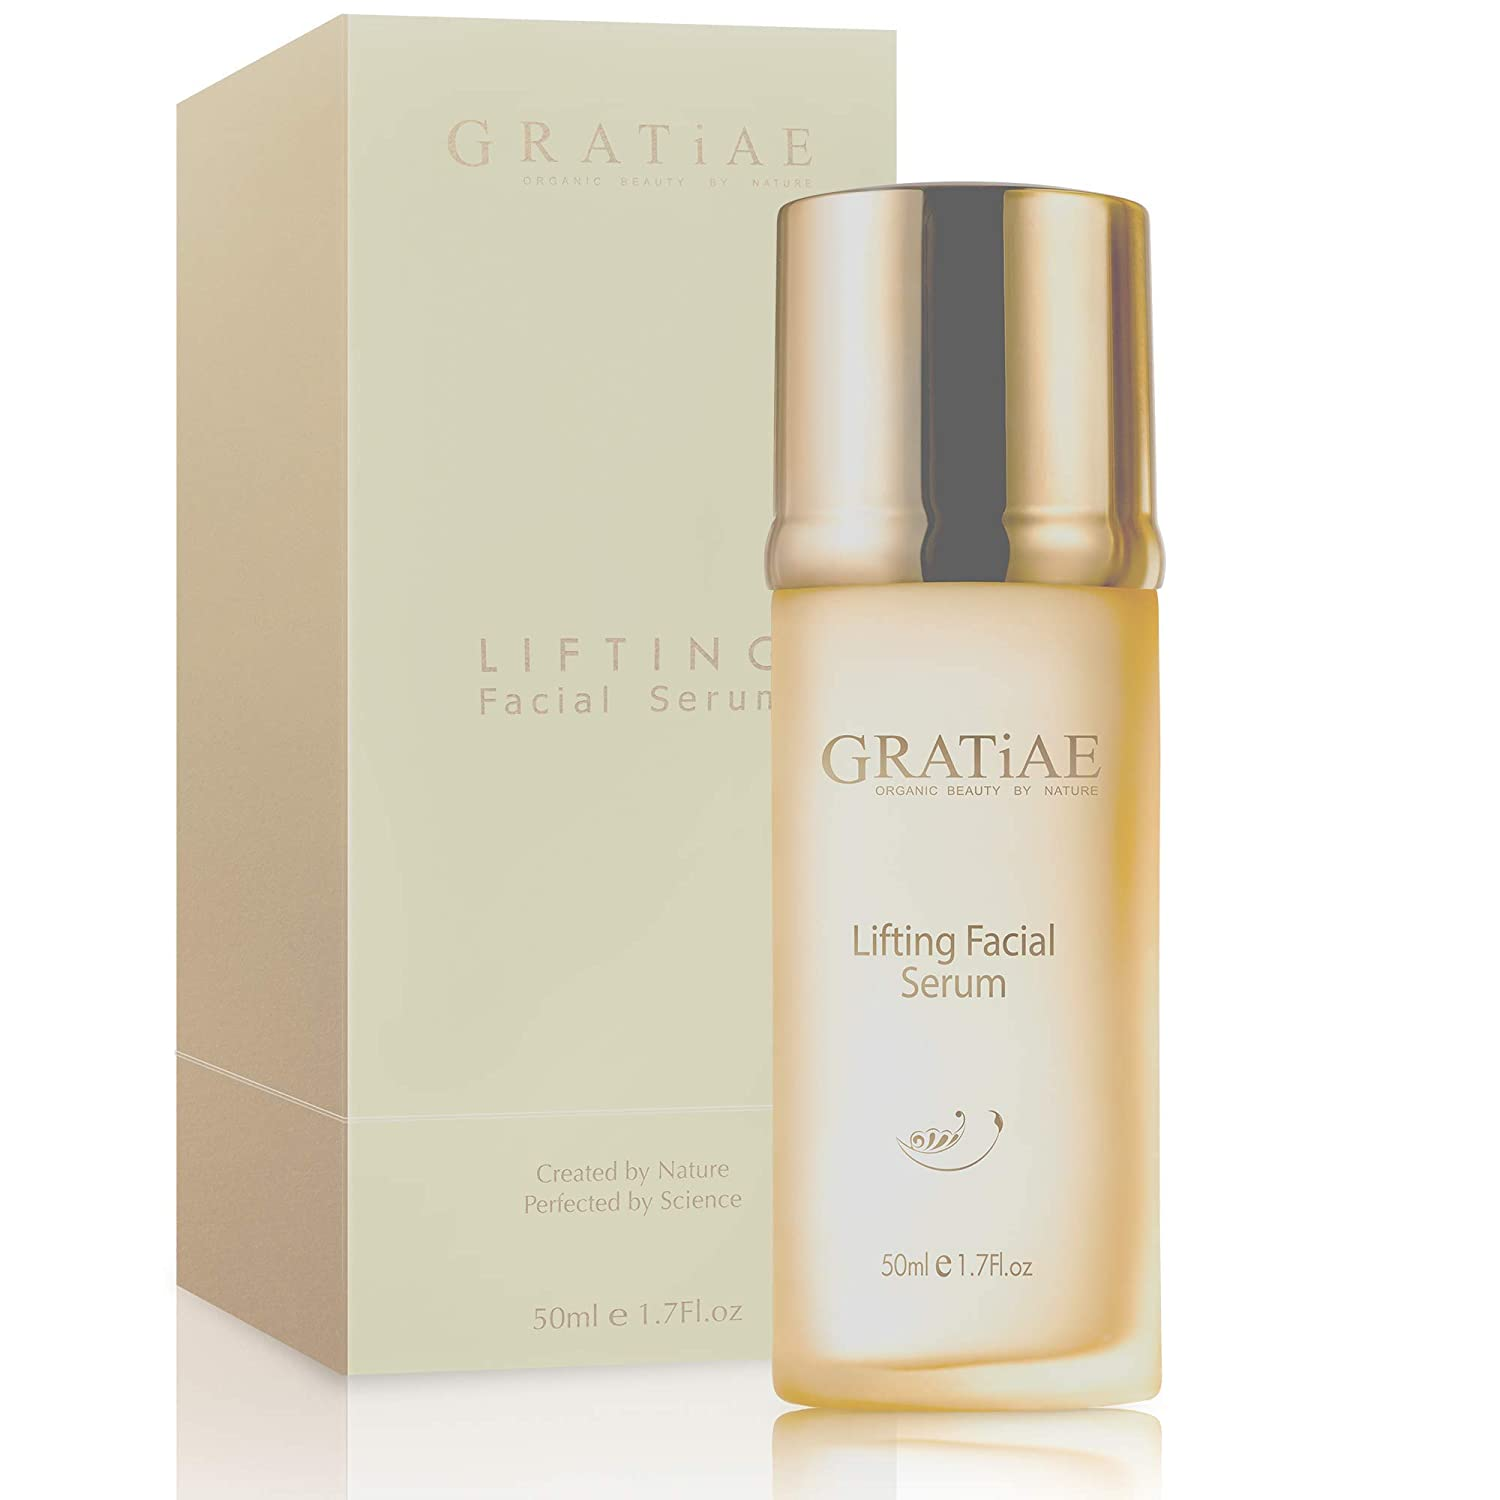 Gratiae Organics Lifting Facial Serum, Pure-Highest Quality, Anti-Aging, Moisturizing, Non-greasy, treatment for wrinkles 1.7 fl.oz